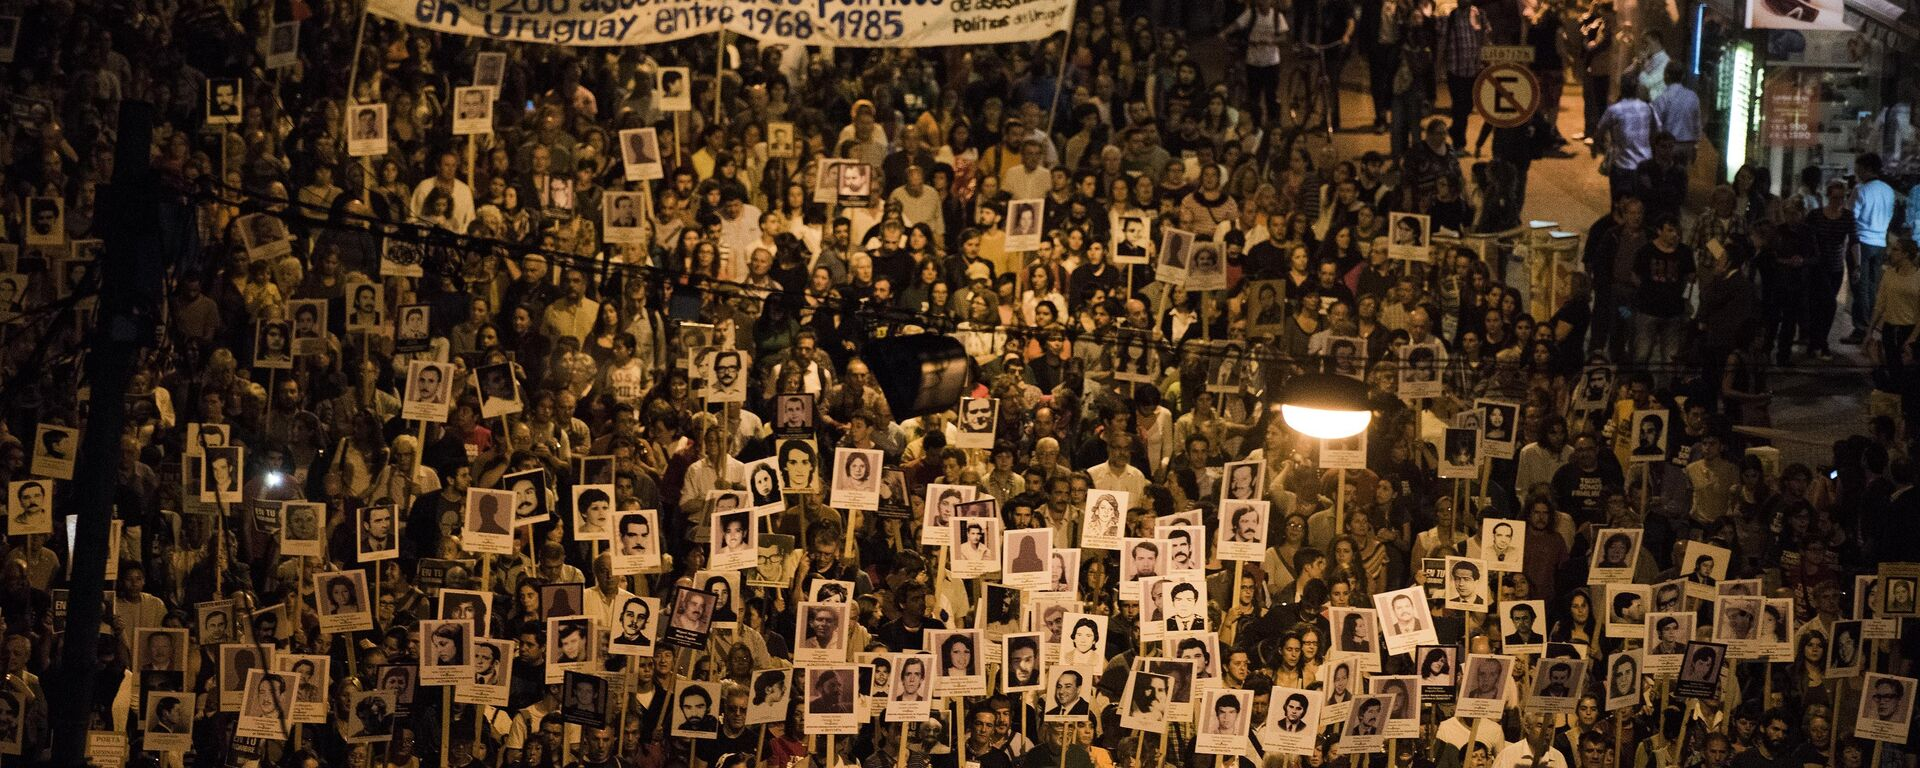 Demonstrators take part in the 20th March of Silence in Montevideo, Uruguay, Wednesday, May 20, 2015.  - Sputnik Mundo, 1920, 19.05.2021